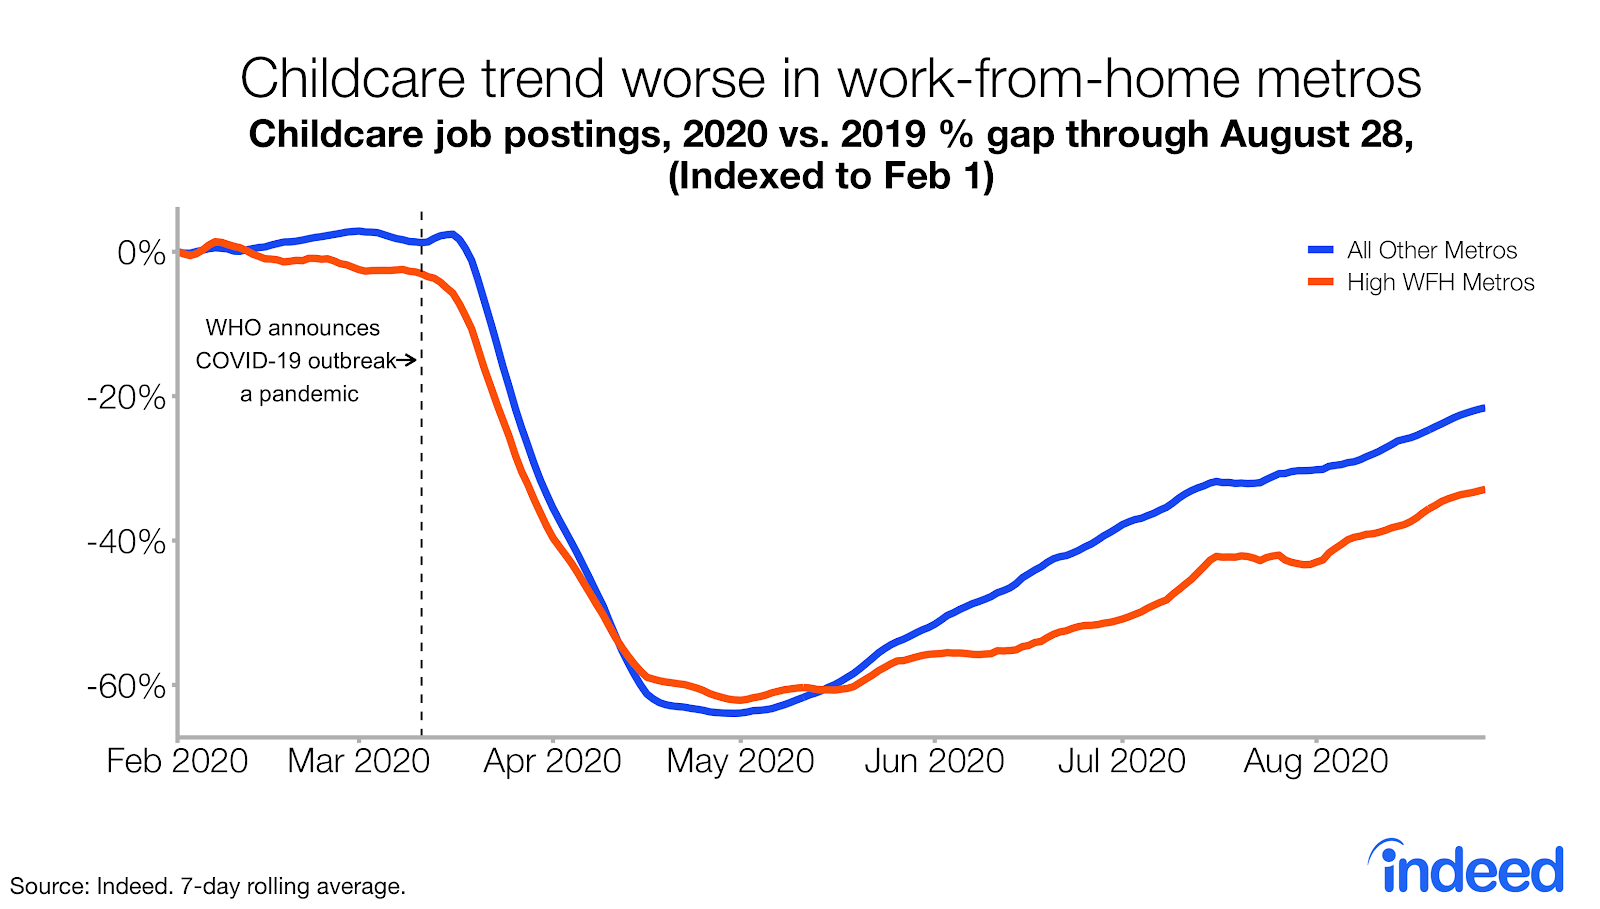 Line graph childcare trend worse in metros with work from home ordinances